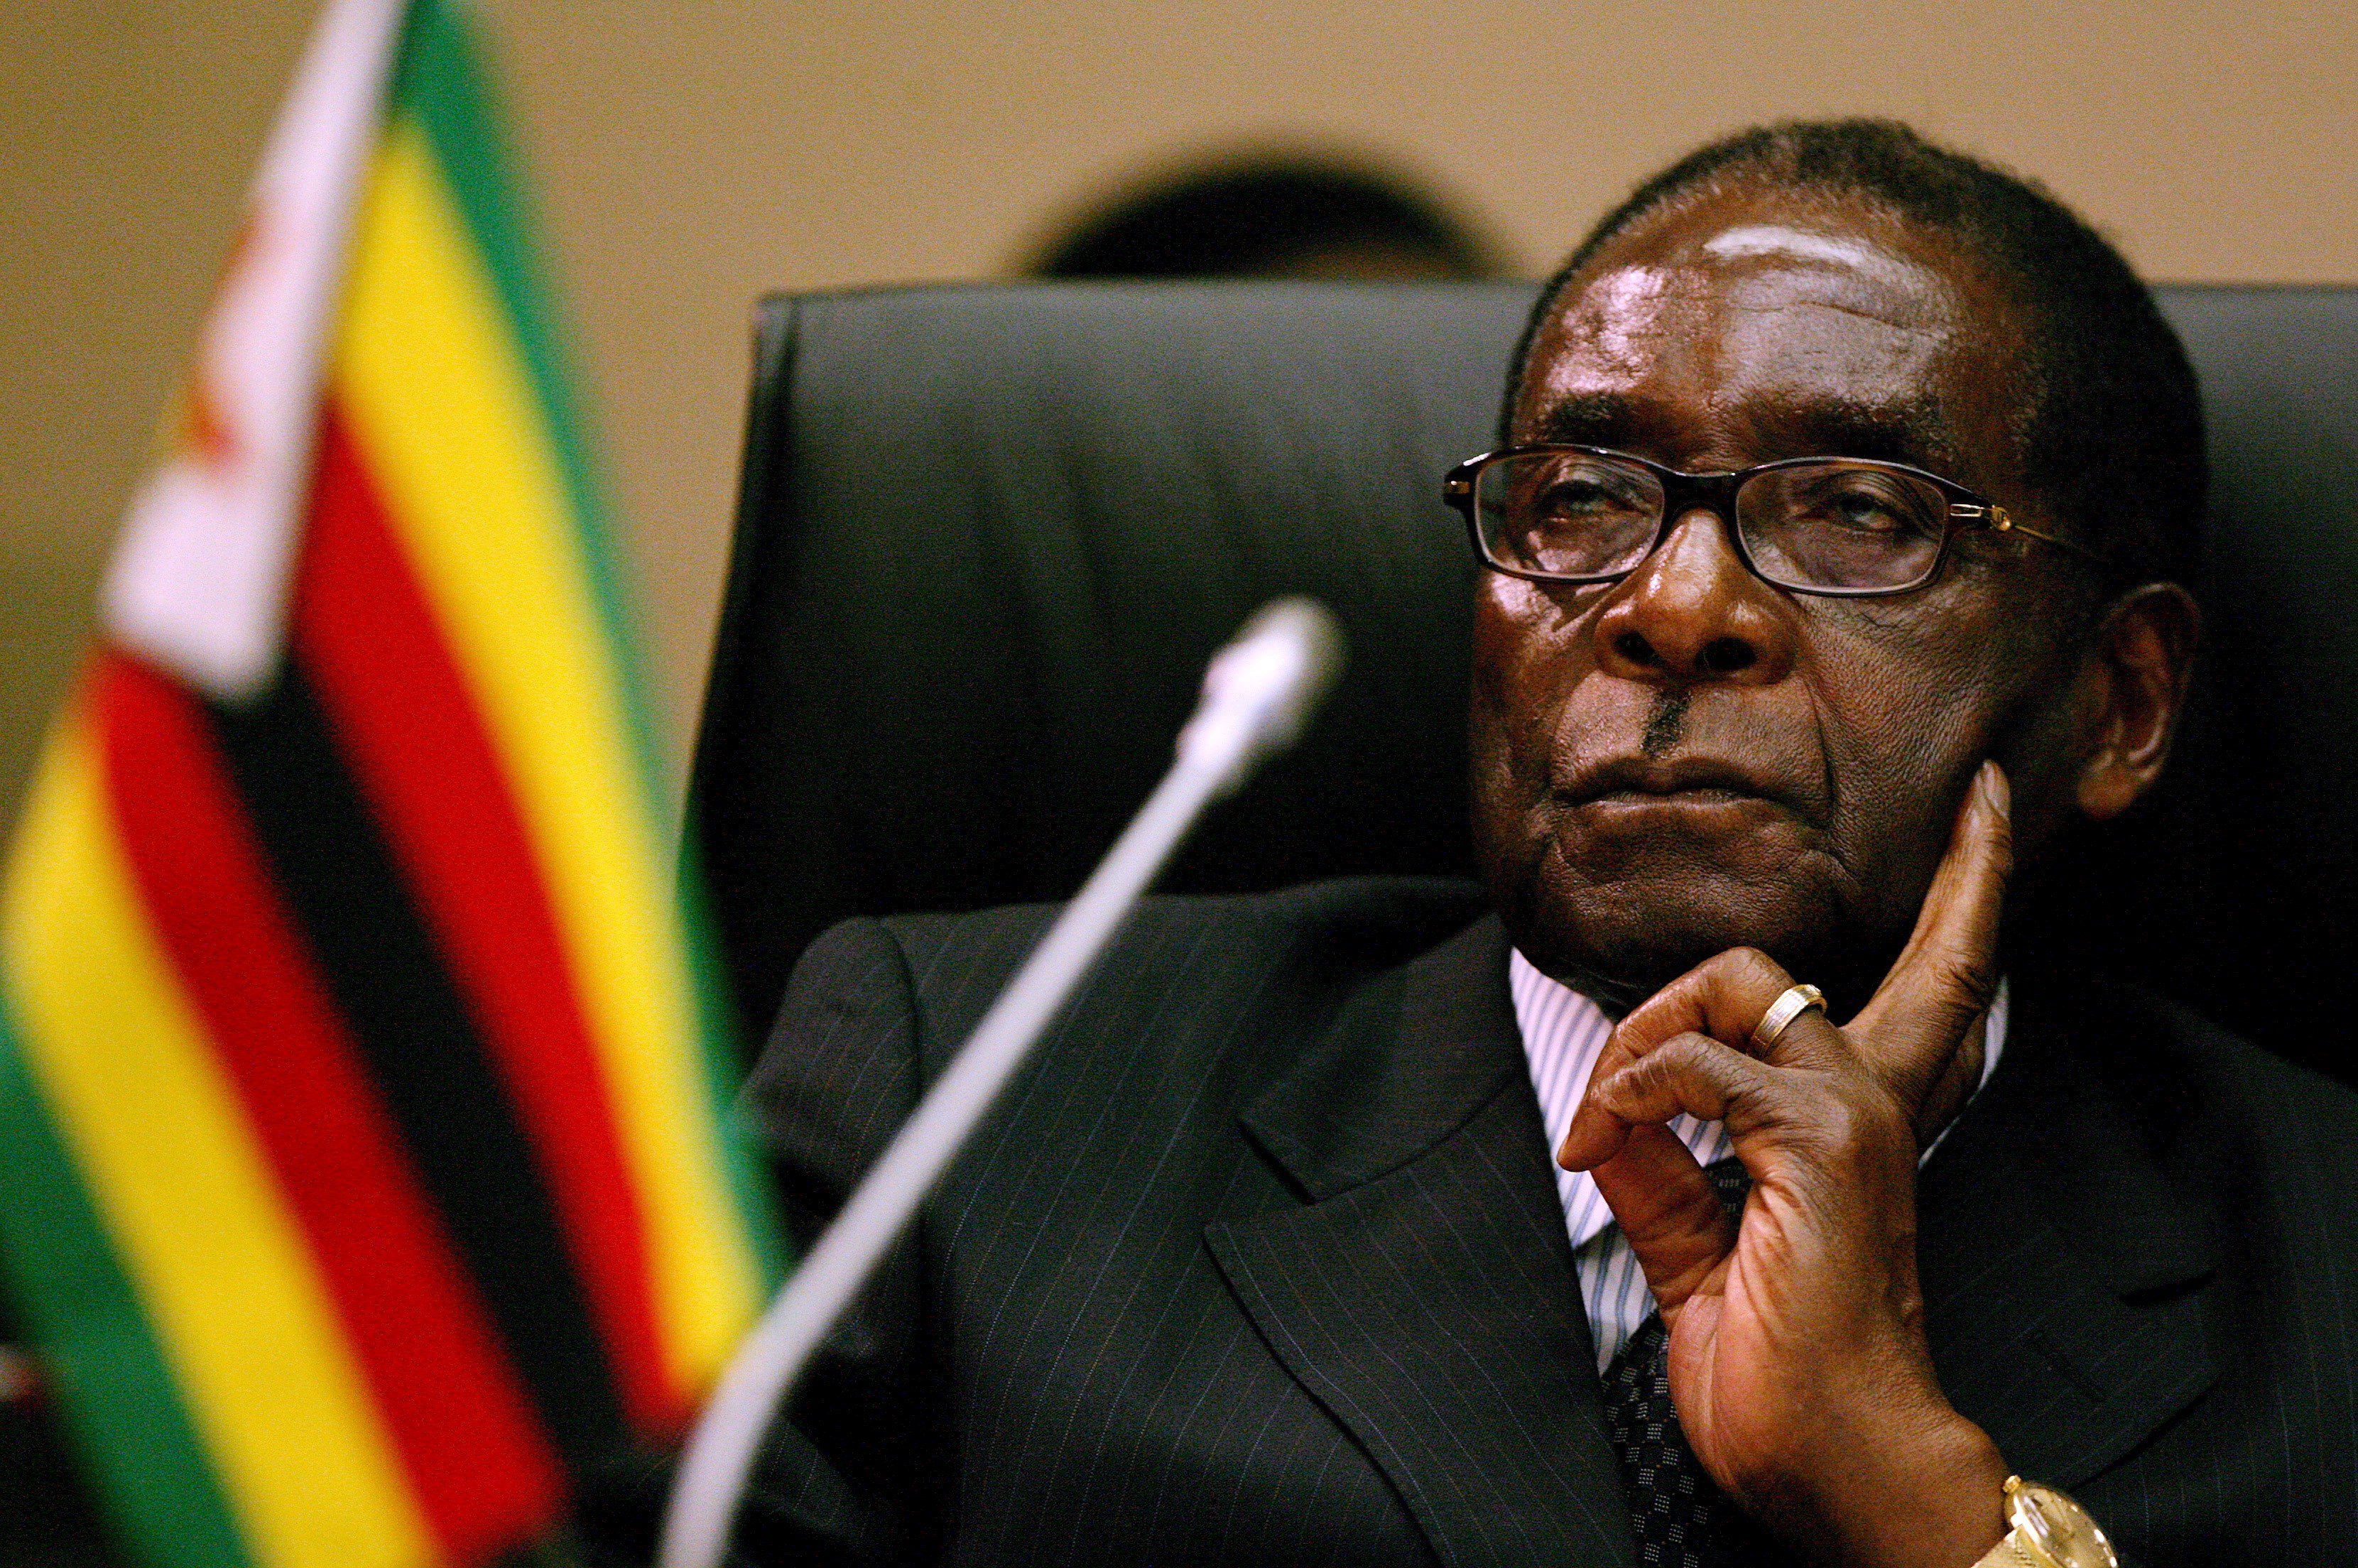 epa01648158 (FILE) A file photograph showing Zimbabwean President Robert Mugabe attending the Southern African Development Community (SADC) Extraordinary Summit of Heads of State and Government at the Sandton Convention Centre in Johannesburg, South Africa, 09 November 2008. President Robert Mugabe said that Zimbabwe could hold fresh elections in two years if a new constitution is approved in a referendum, in an interview with state media on 26 February 2009. Mugabe, said in the Herald newspaper that the new unity government with Prime Minister Morgan Tsvangirai, formed only two weeks ago, was a temporary solution until the parties could agree on a new charter and fresh polls. EPA/JON HRUSA